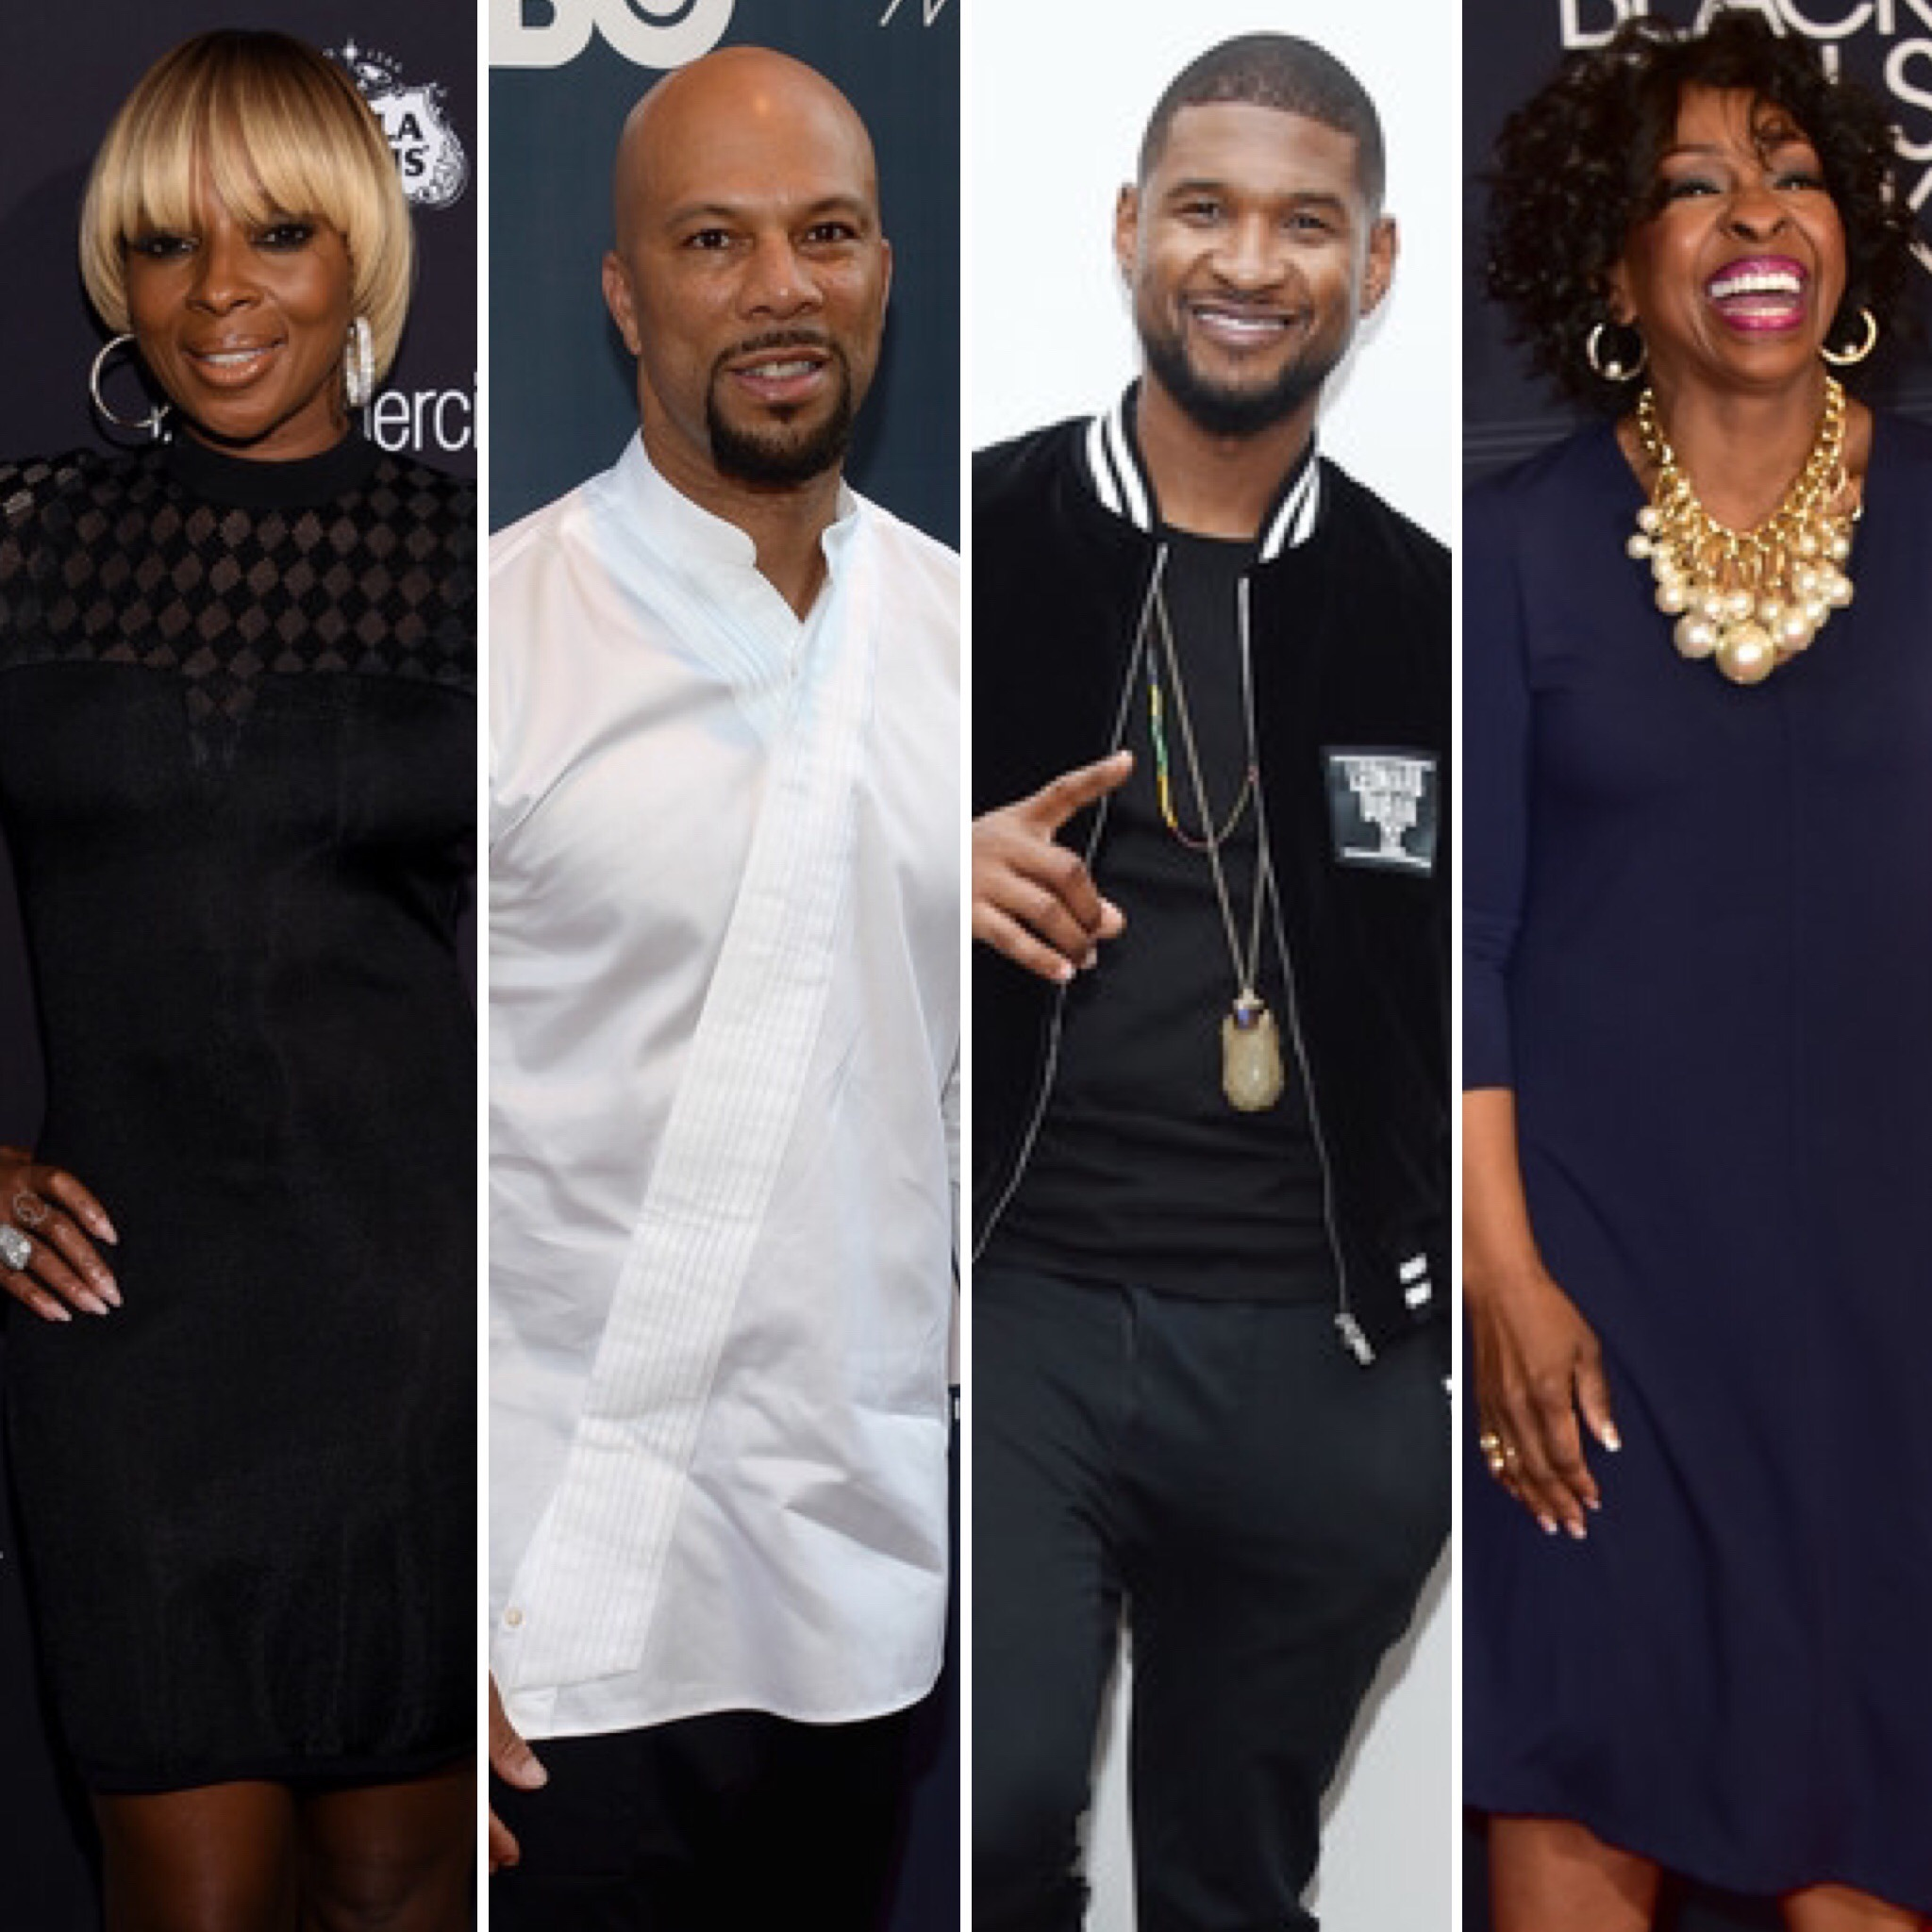 (L-R) Mary J. Blige, Common, Usher and Gladys Knight